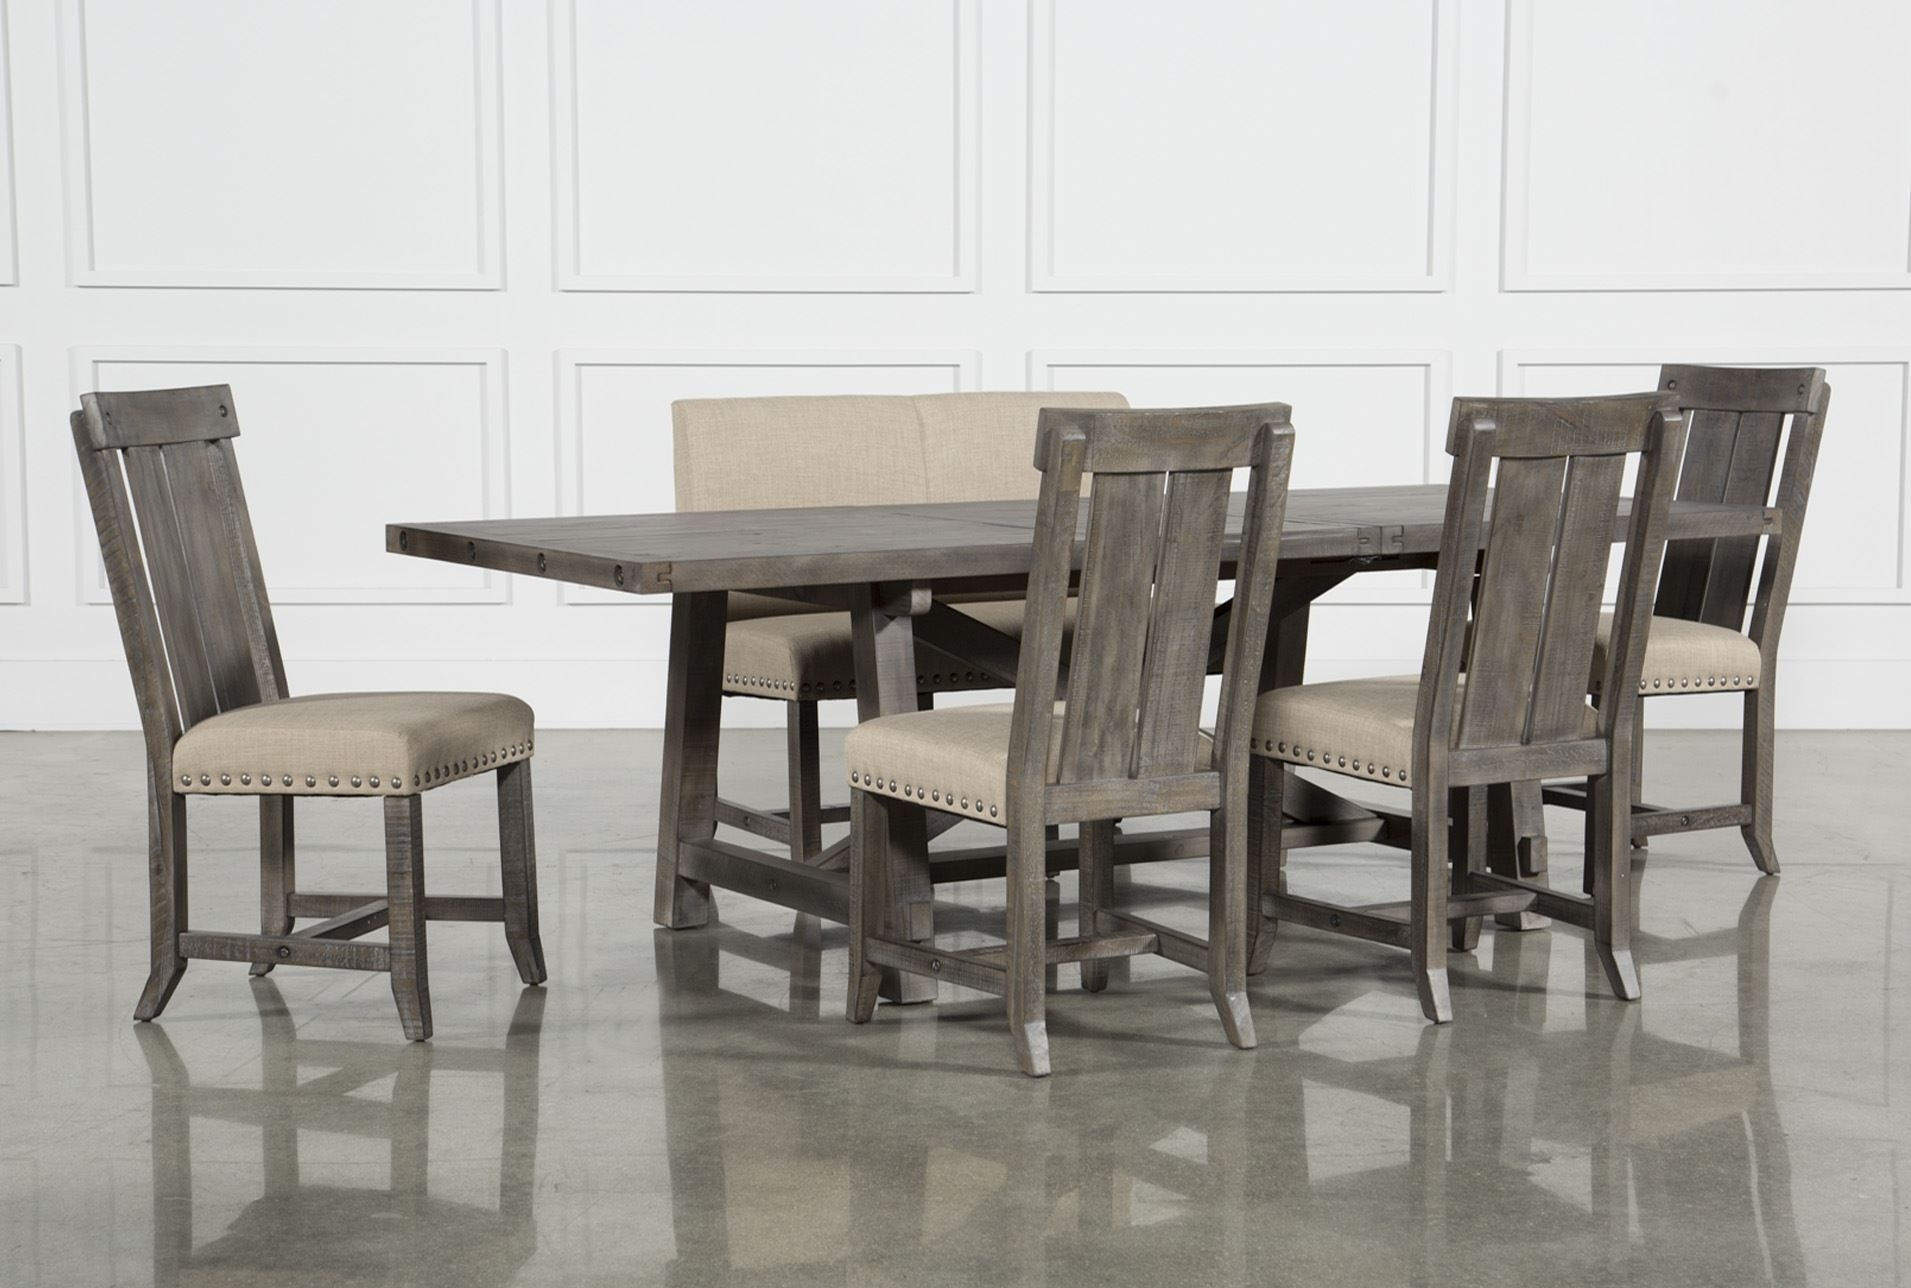 Jaxon Grey 6 Piece Rectangle Extension Dining Set W/bench & Wood Inside Most Recent Norwood 9 Piece Rectangle Extension Dining Sets (Image 5 of 20)